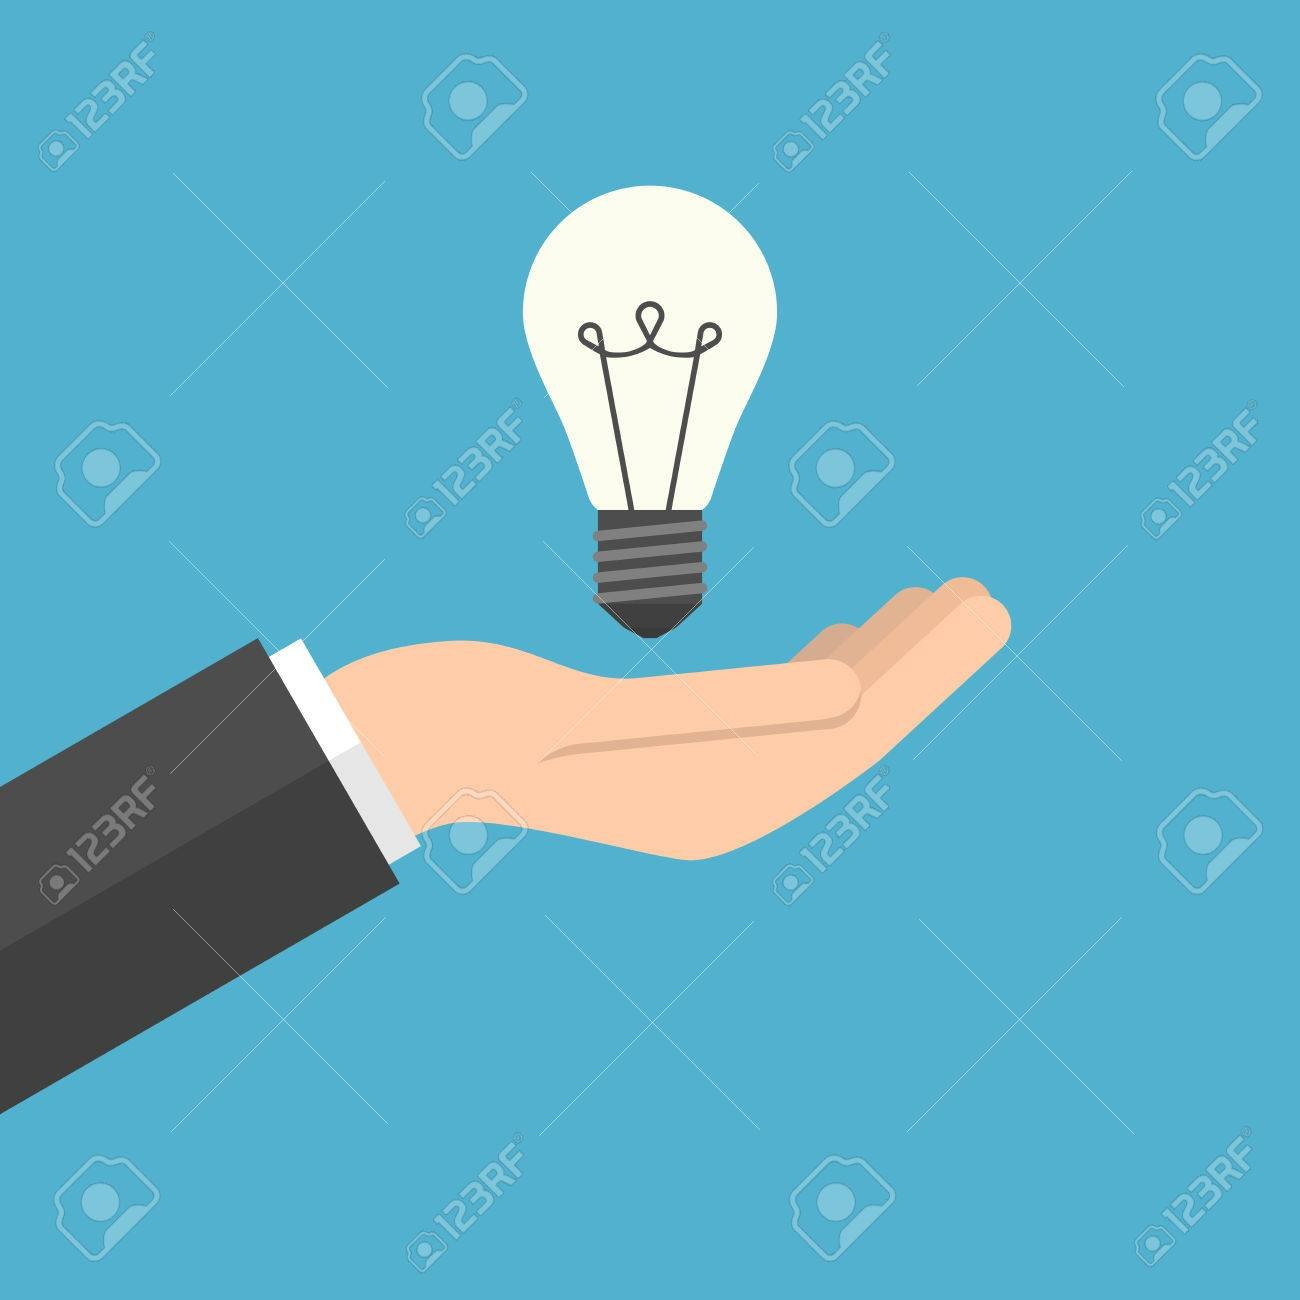 Lightbulb In Hand Businessman Isolated On Blue Background 1300x1300